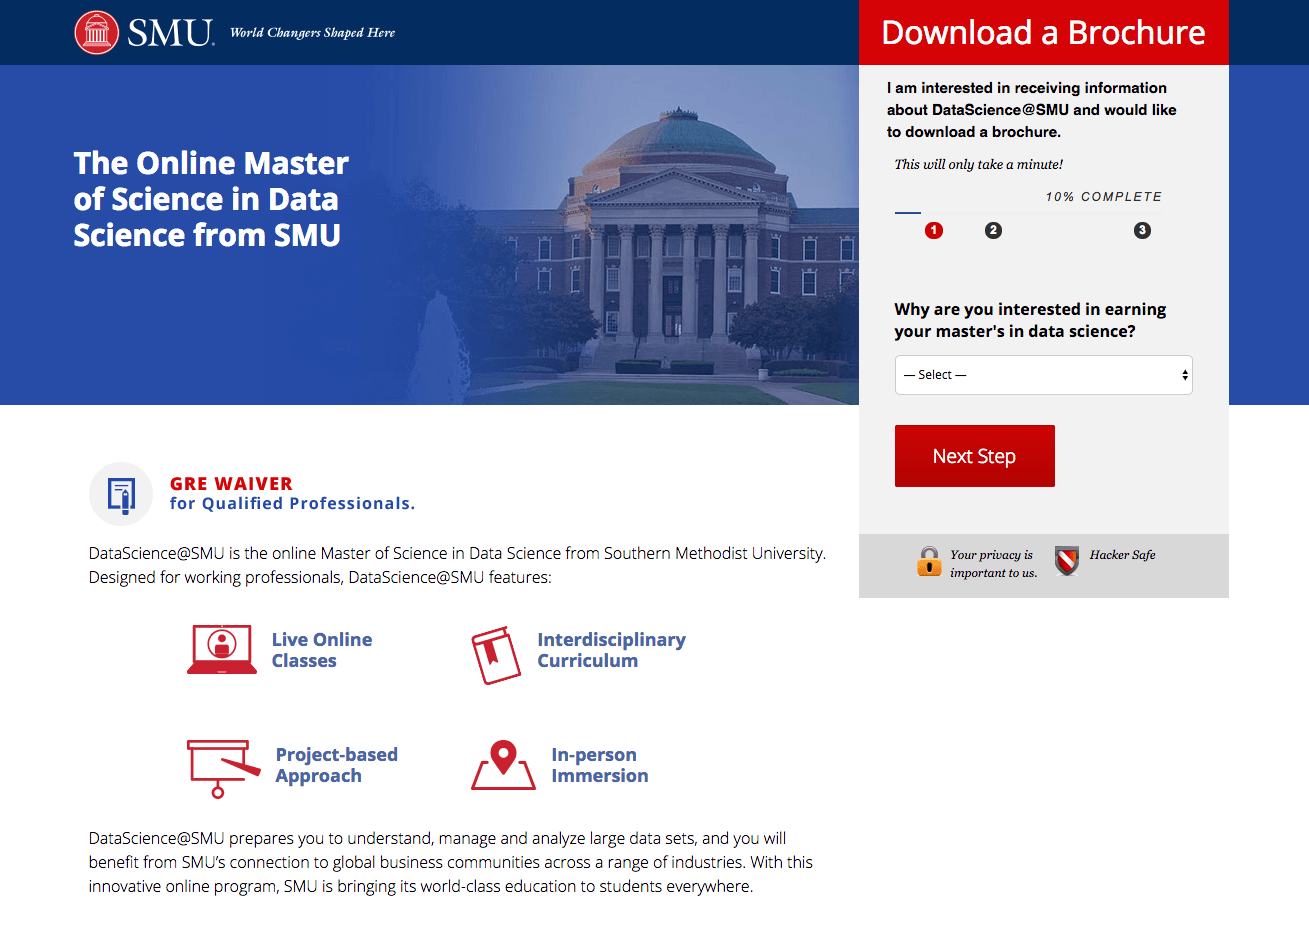 This picture shows marketers how Southern Methodist University uses an Instagram landing page to promote their Master of Science program.